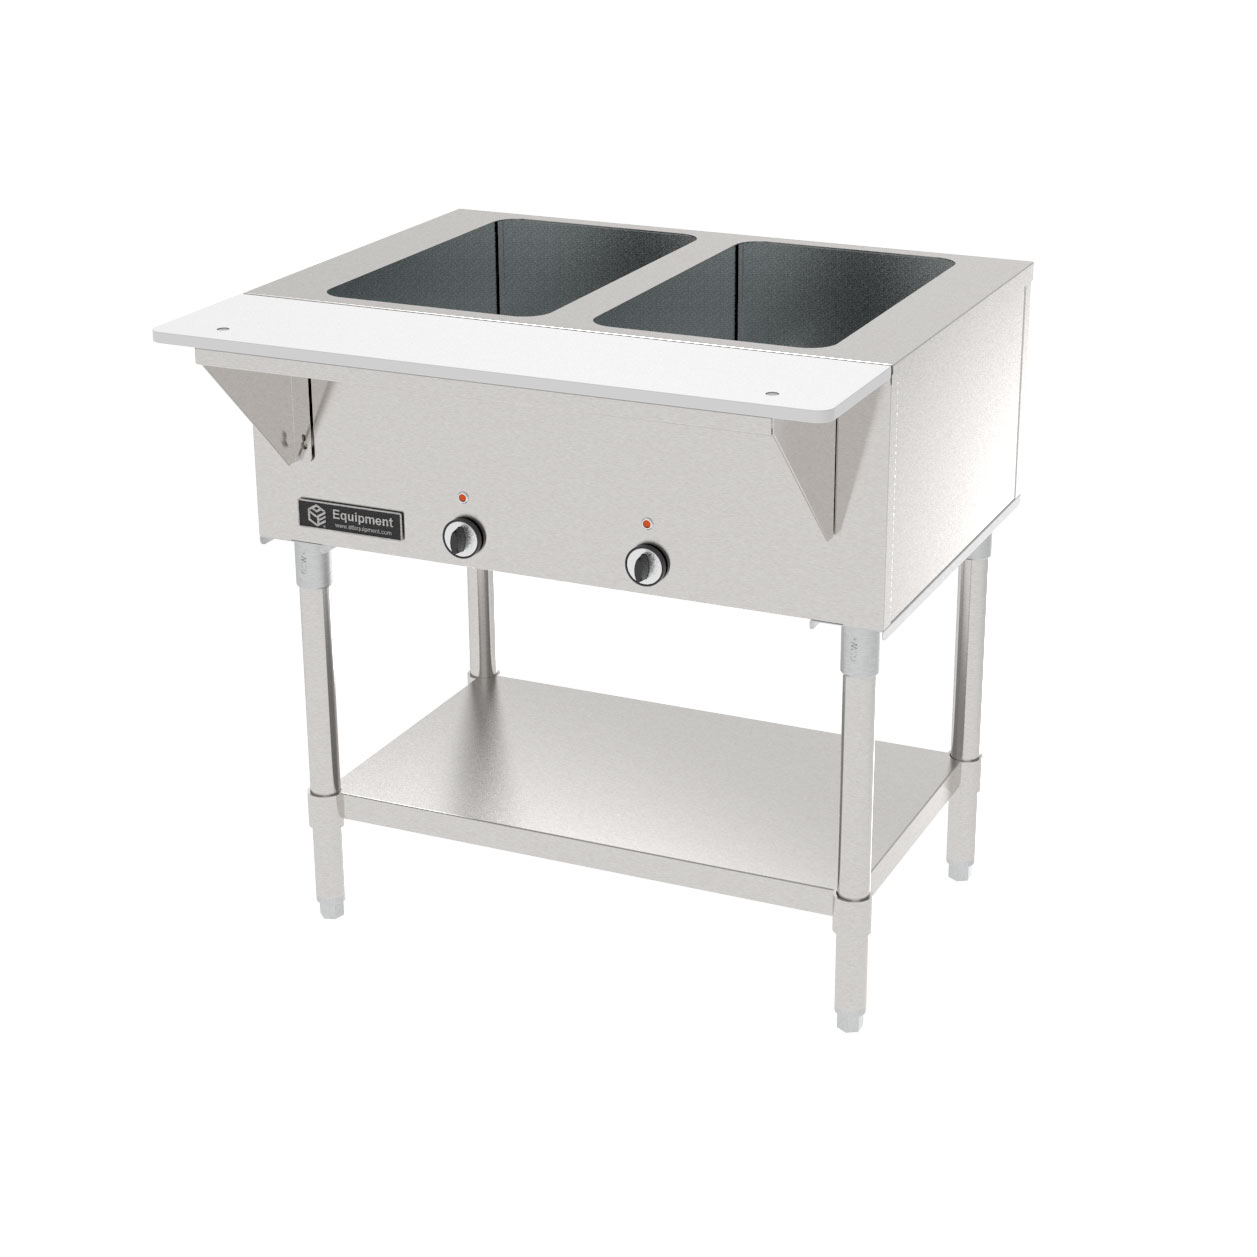 GSW USA ST-2WOE-120 serving counter, hot food, electric